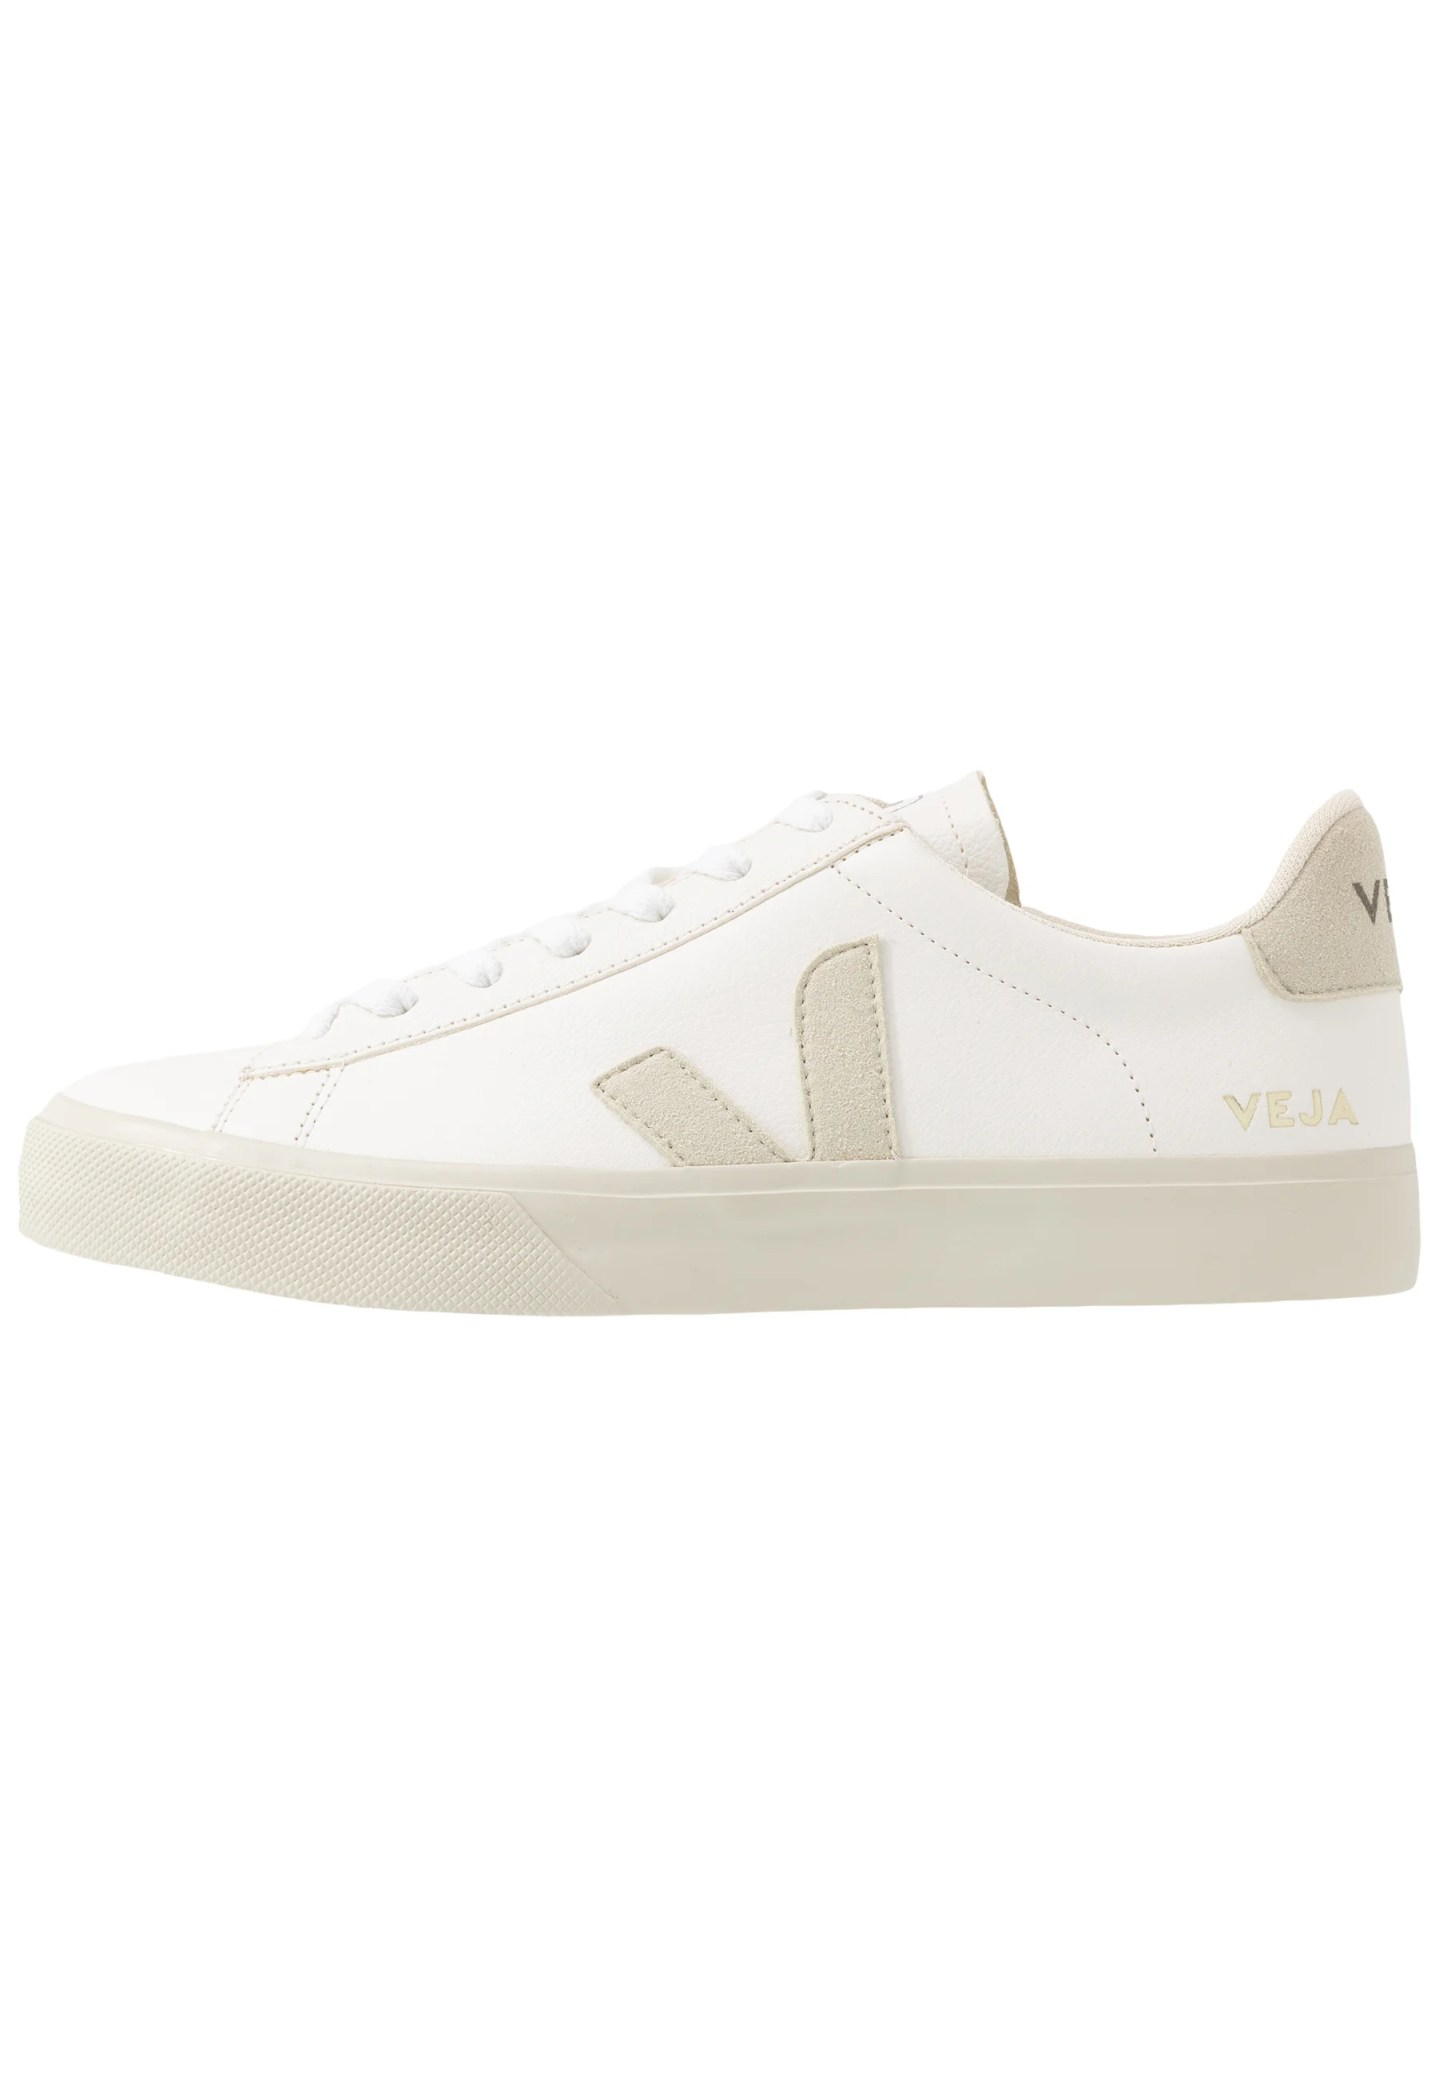 Veja CAMPO Sneakers Beige